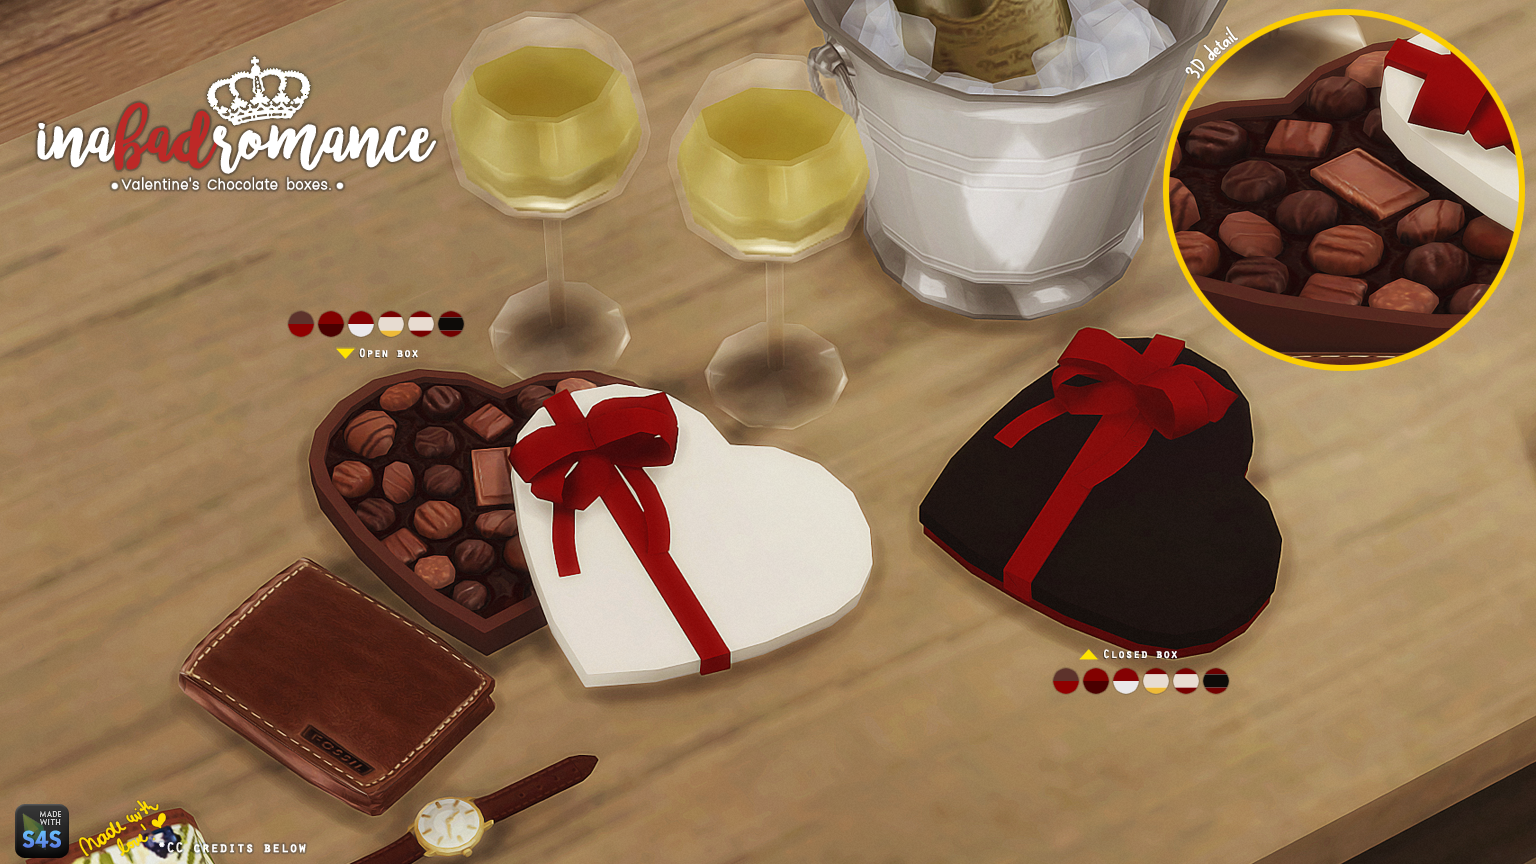 Valentine's Chocolate Boxes by Inabadromance